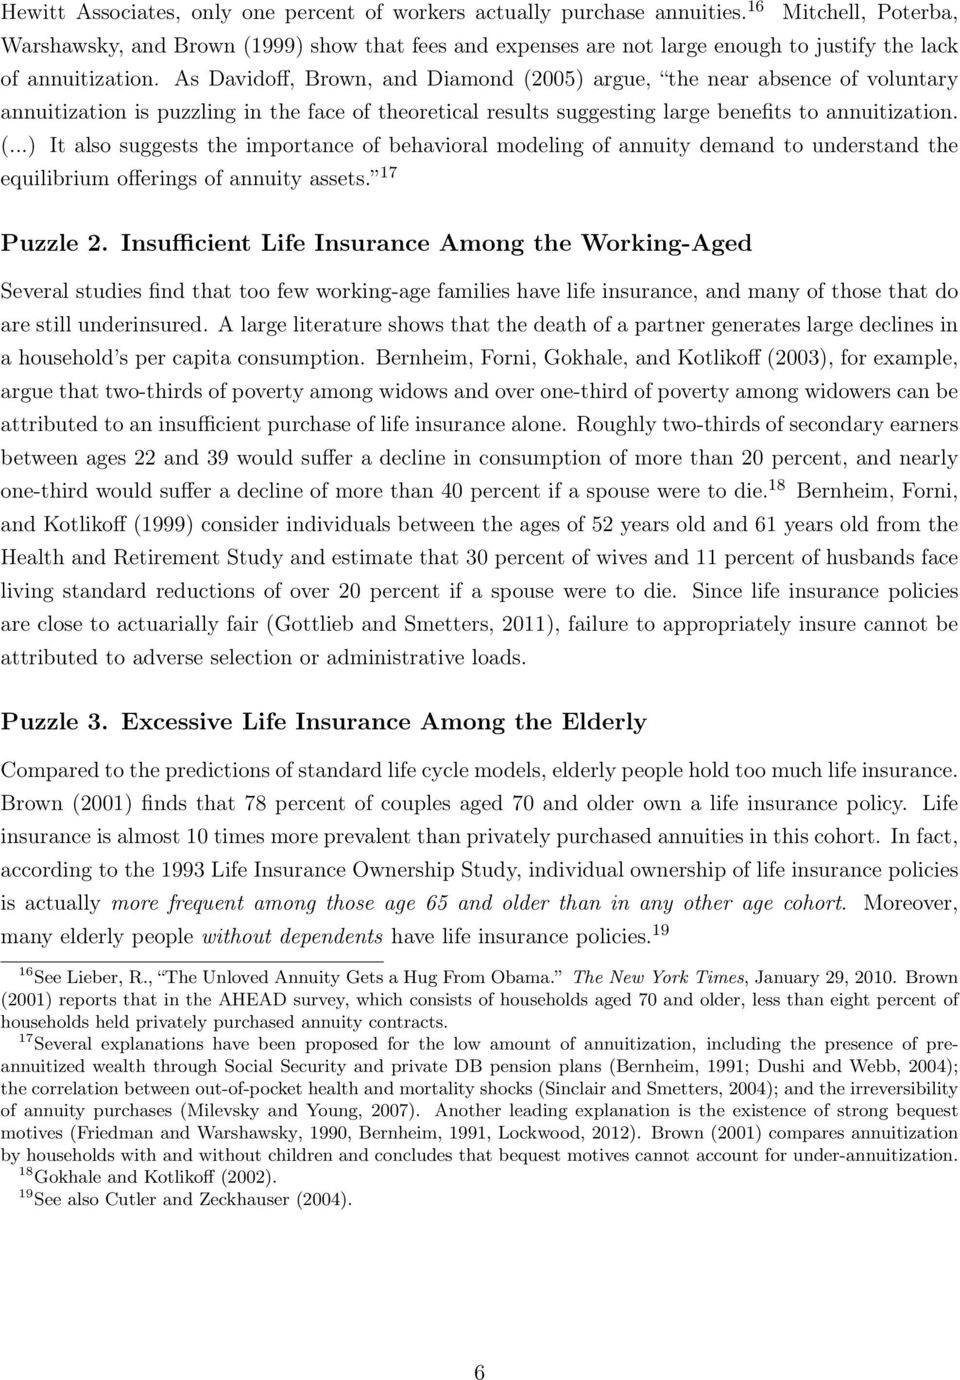 As Davidoff, Brown, and Diamond (25) argue, the near absence of voluntary annuitization is puzzling in the face of theoretical results suggesting large benefits to annuitization. (...) It also suggests the importance of behavioral modeling of annuity demand to understand the equilibrium offerings of annuity assets.